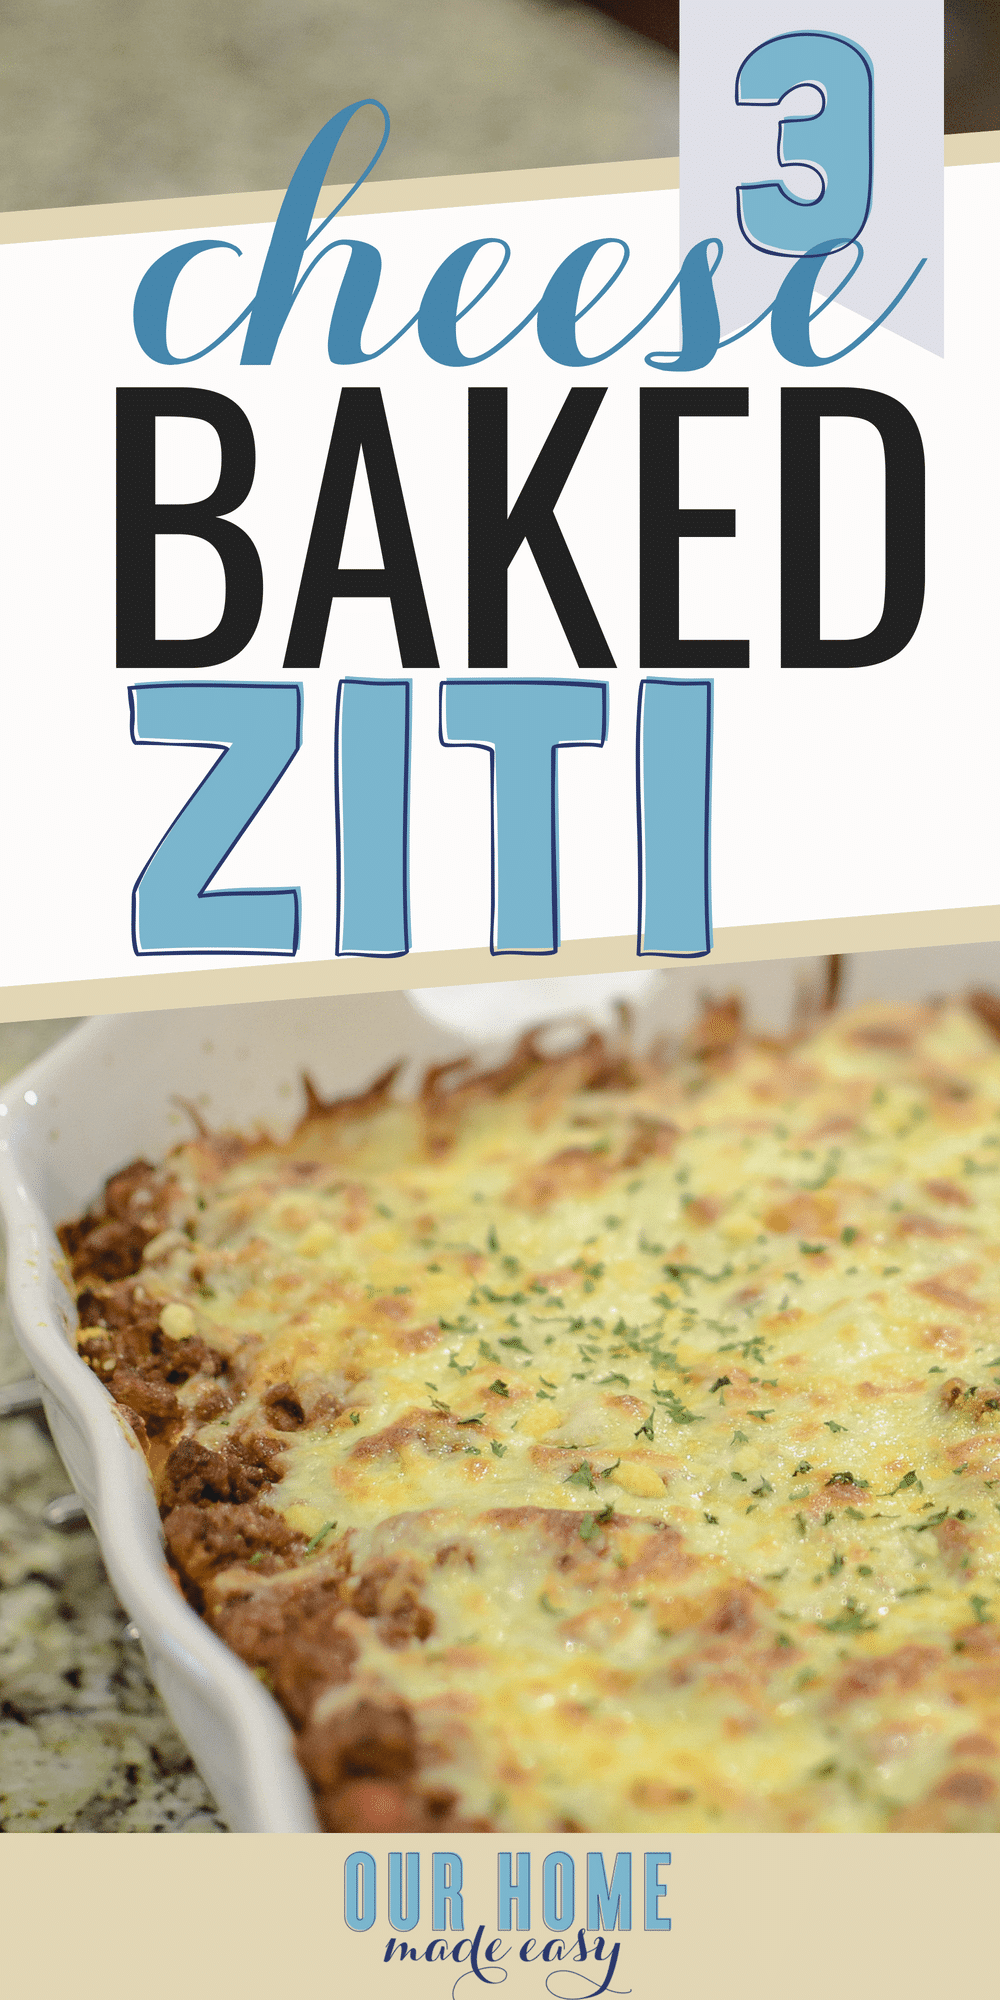 This easy baked ziti is super easy to make and feeds a large family! Click to see the recipe #dinner #pasta #dinnerecipe #italian #cheese #yum